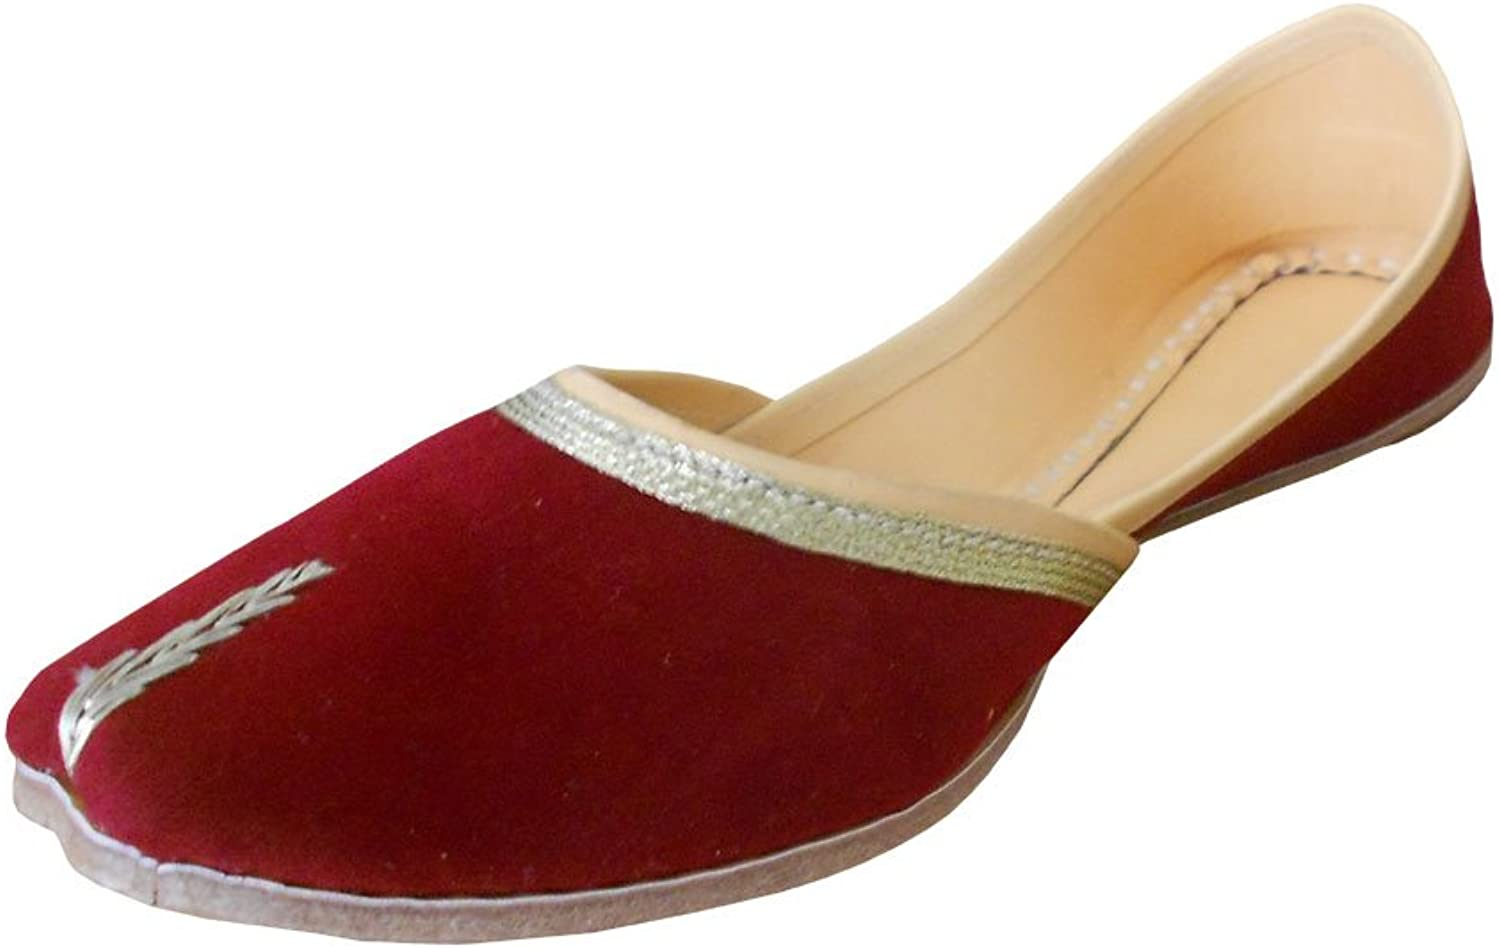 Kalra Creations Women's Traditional Indian shoes Velvet Ethnic Flats